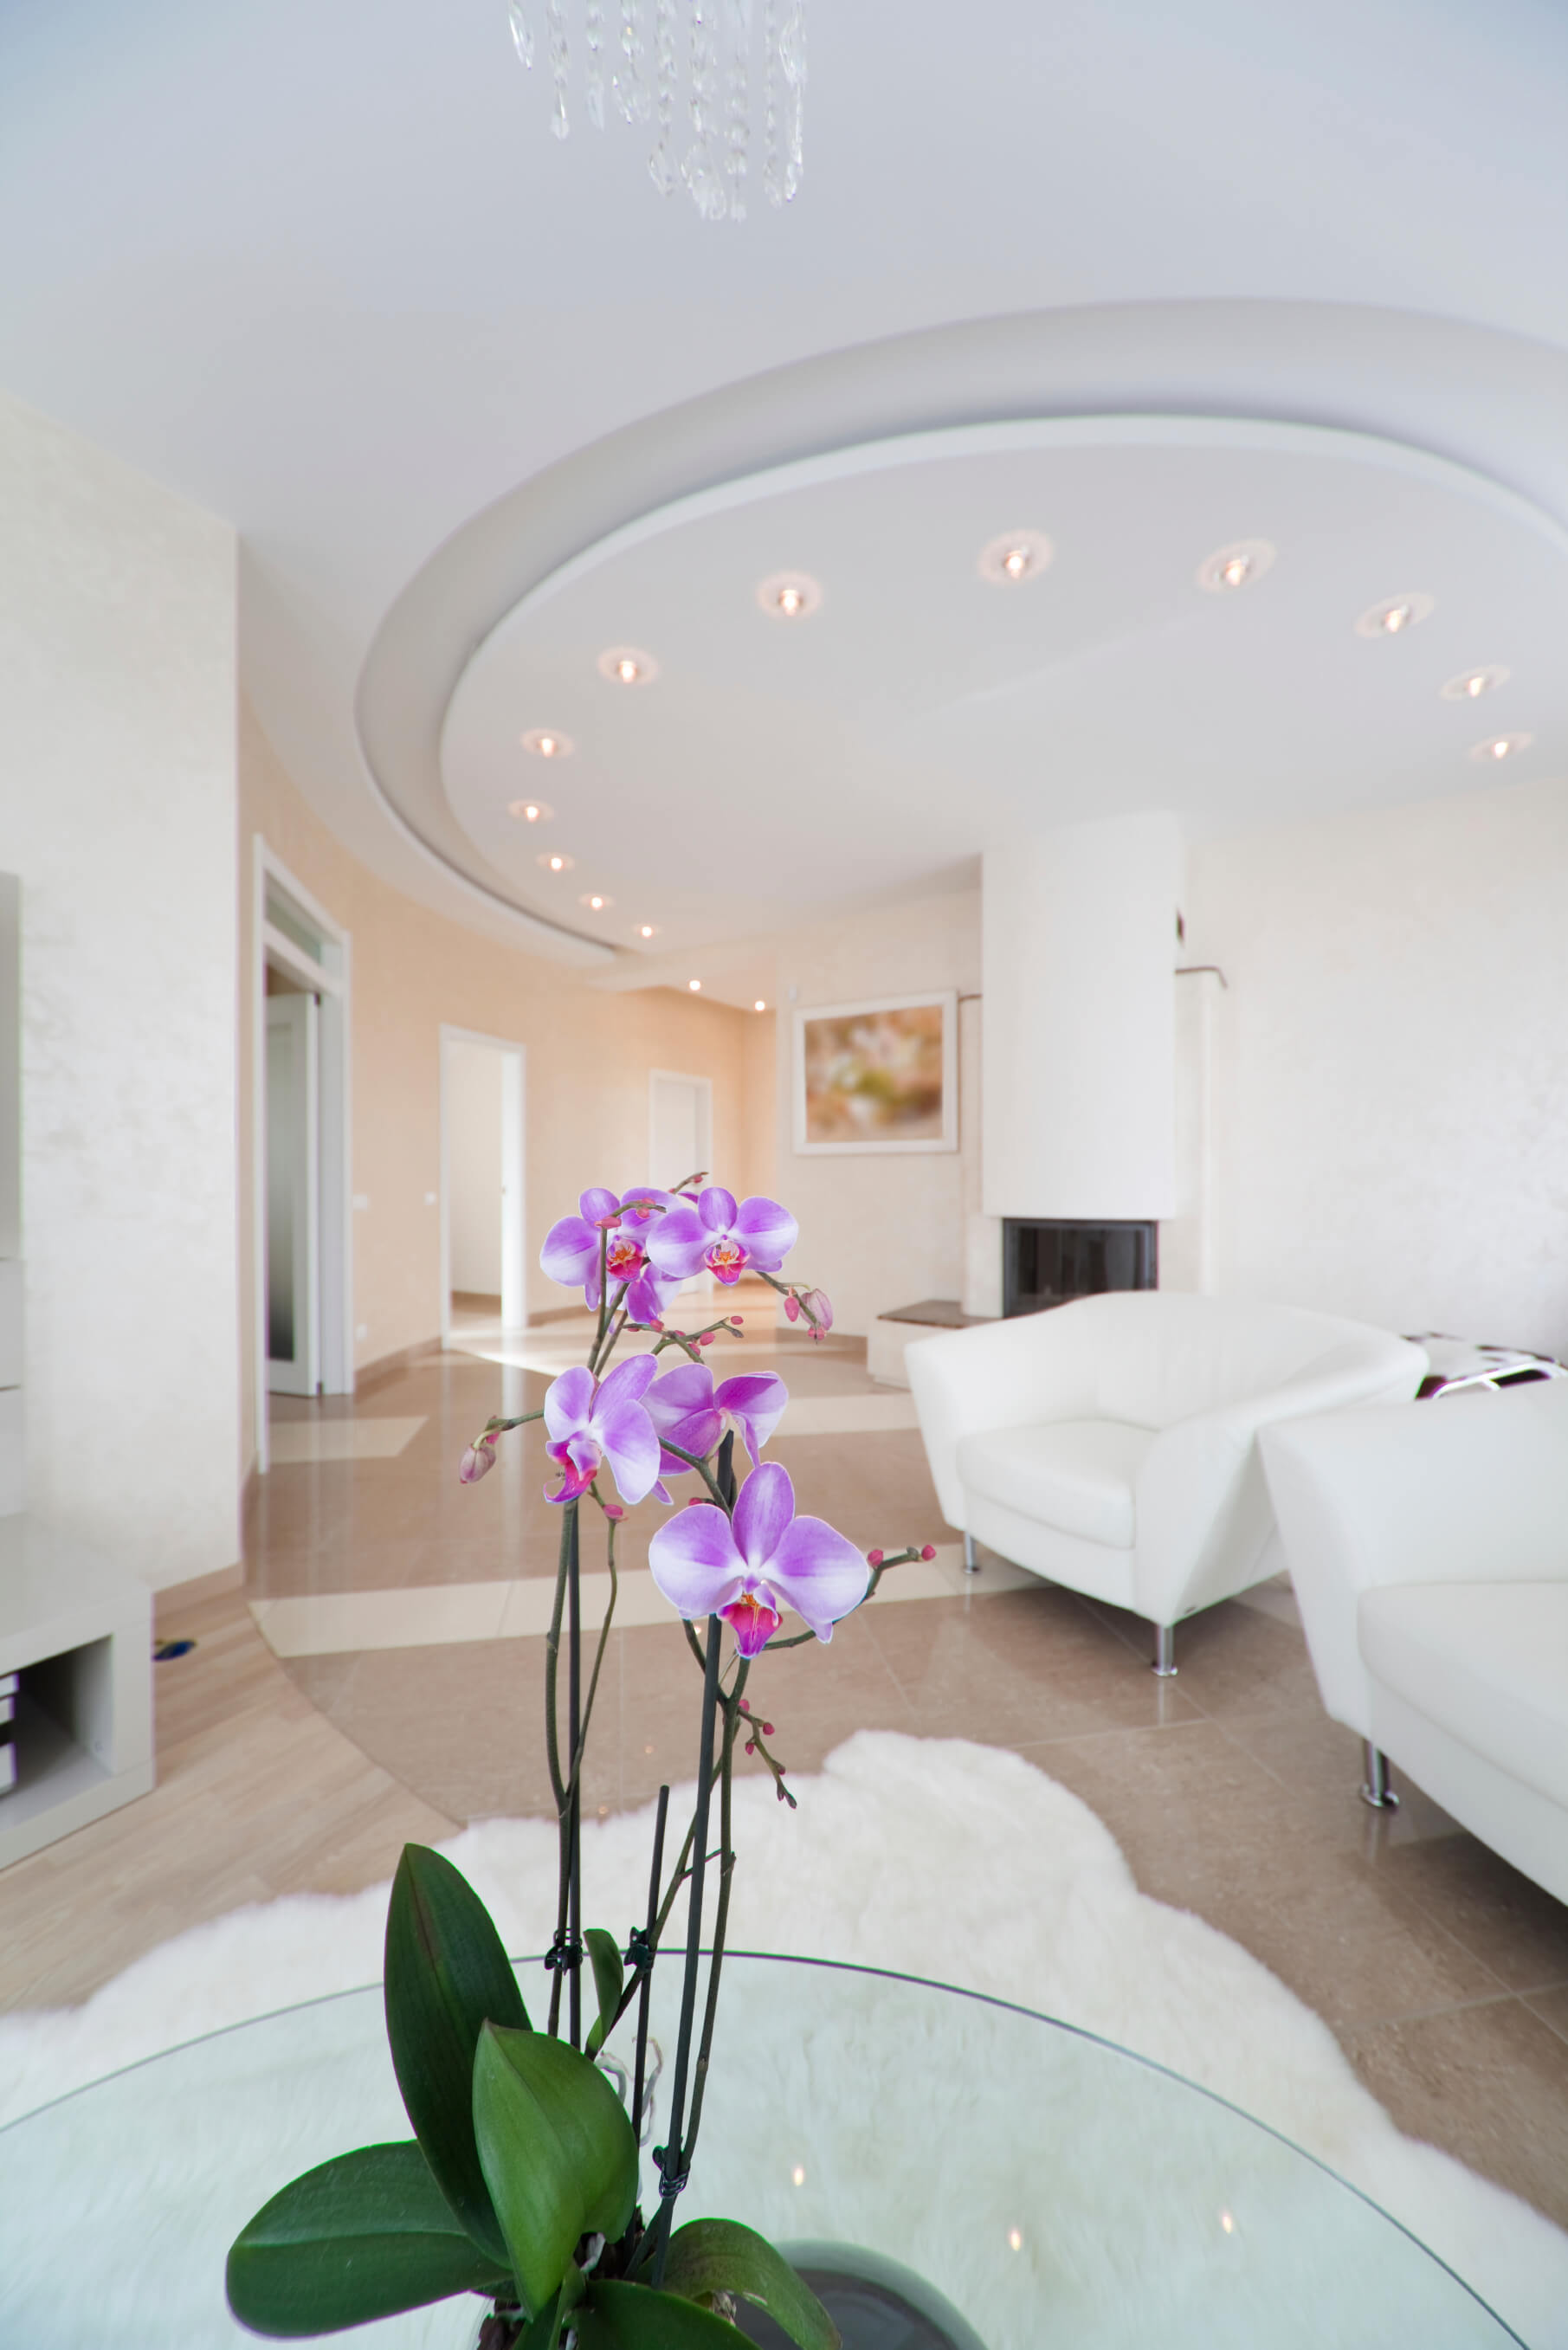 Here is a unique and lovely circular trayed ceiling with a nice lighting element on the lower end of the tray. Not every trayed ceiling has to have to have a large and rectangular tray. There are creative things you can do with this style.